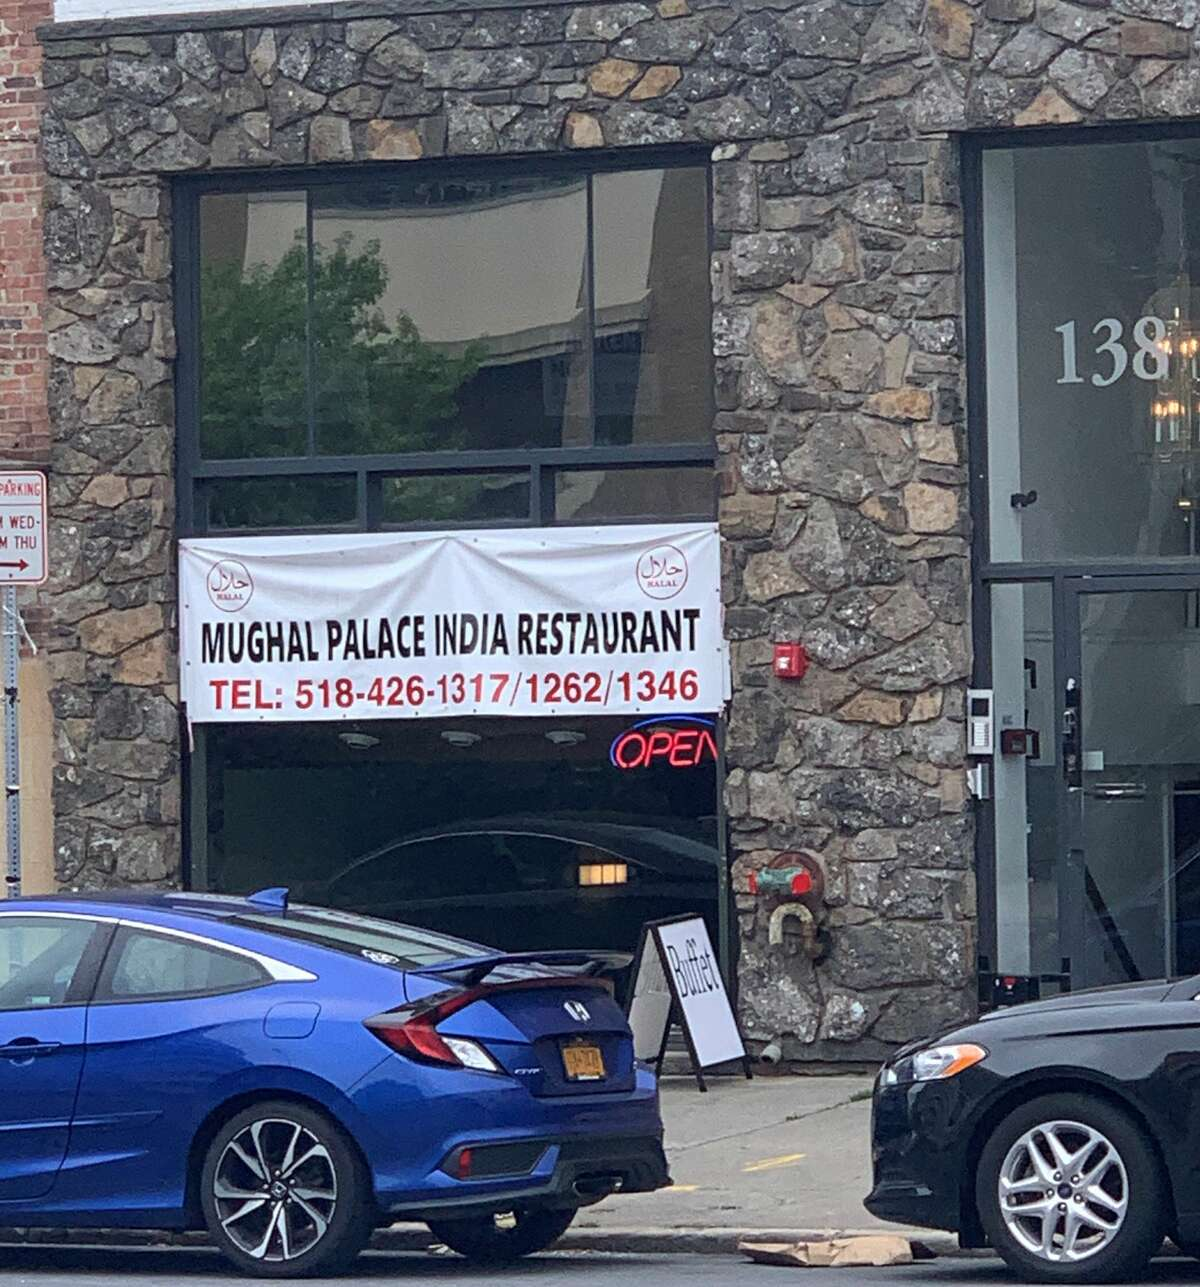 The Mughal Palace location on lower Washington Avenue in Albany previously was home to The French Press and The Grille at 138.